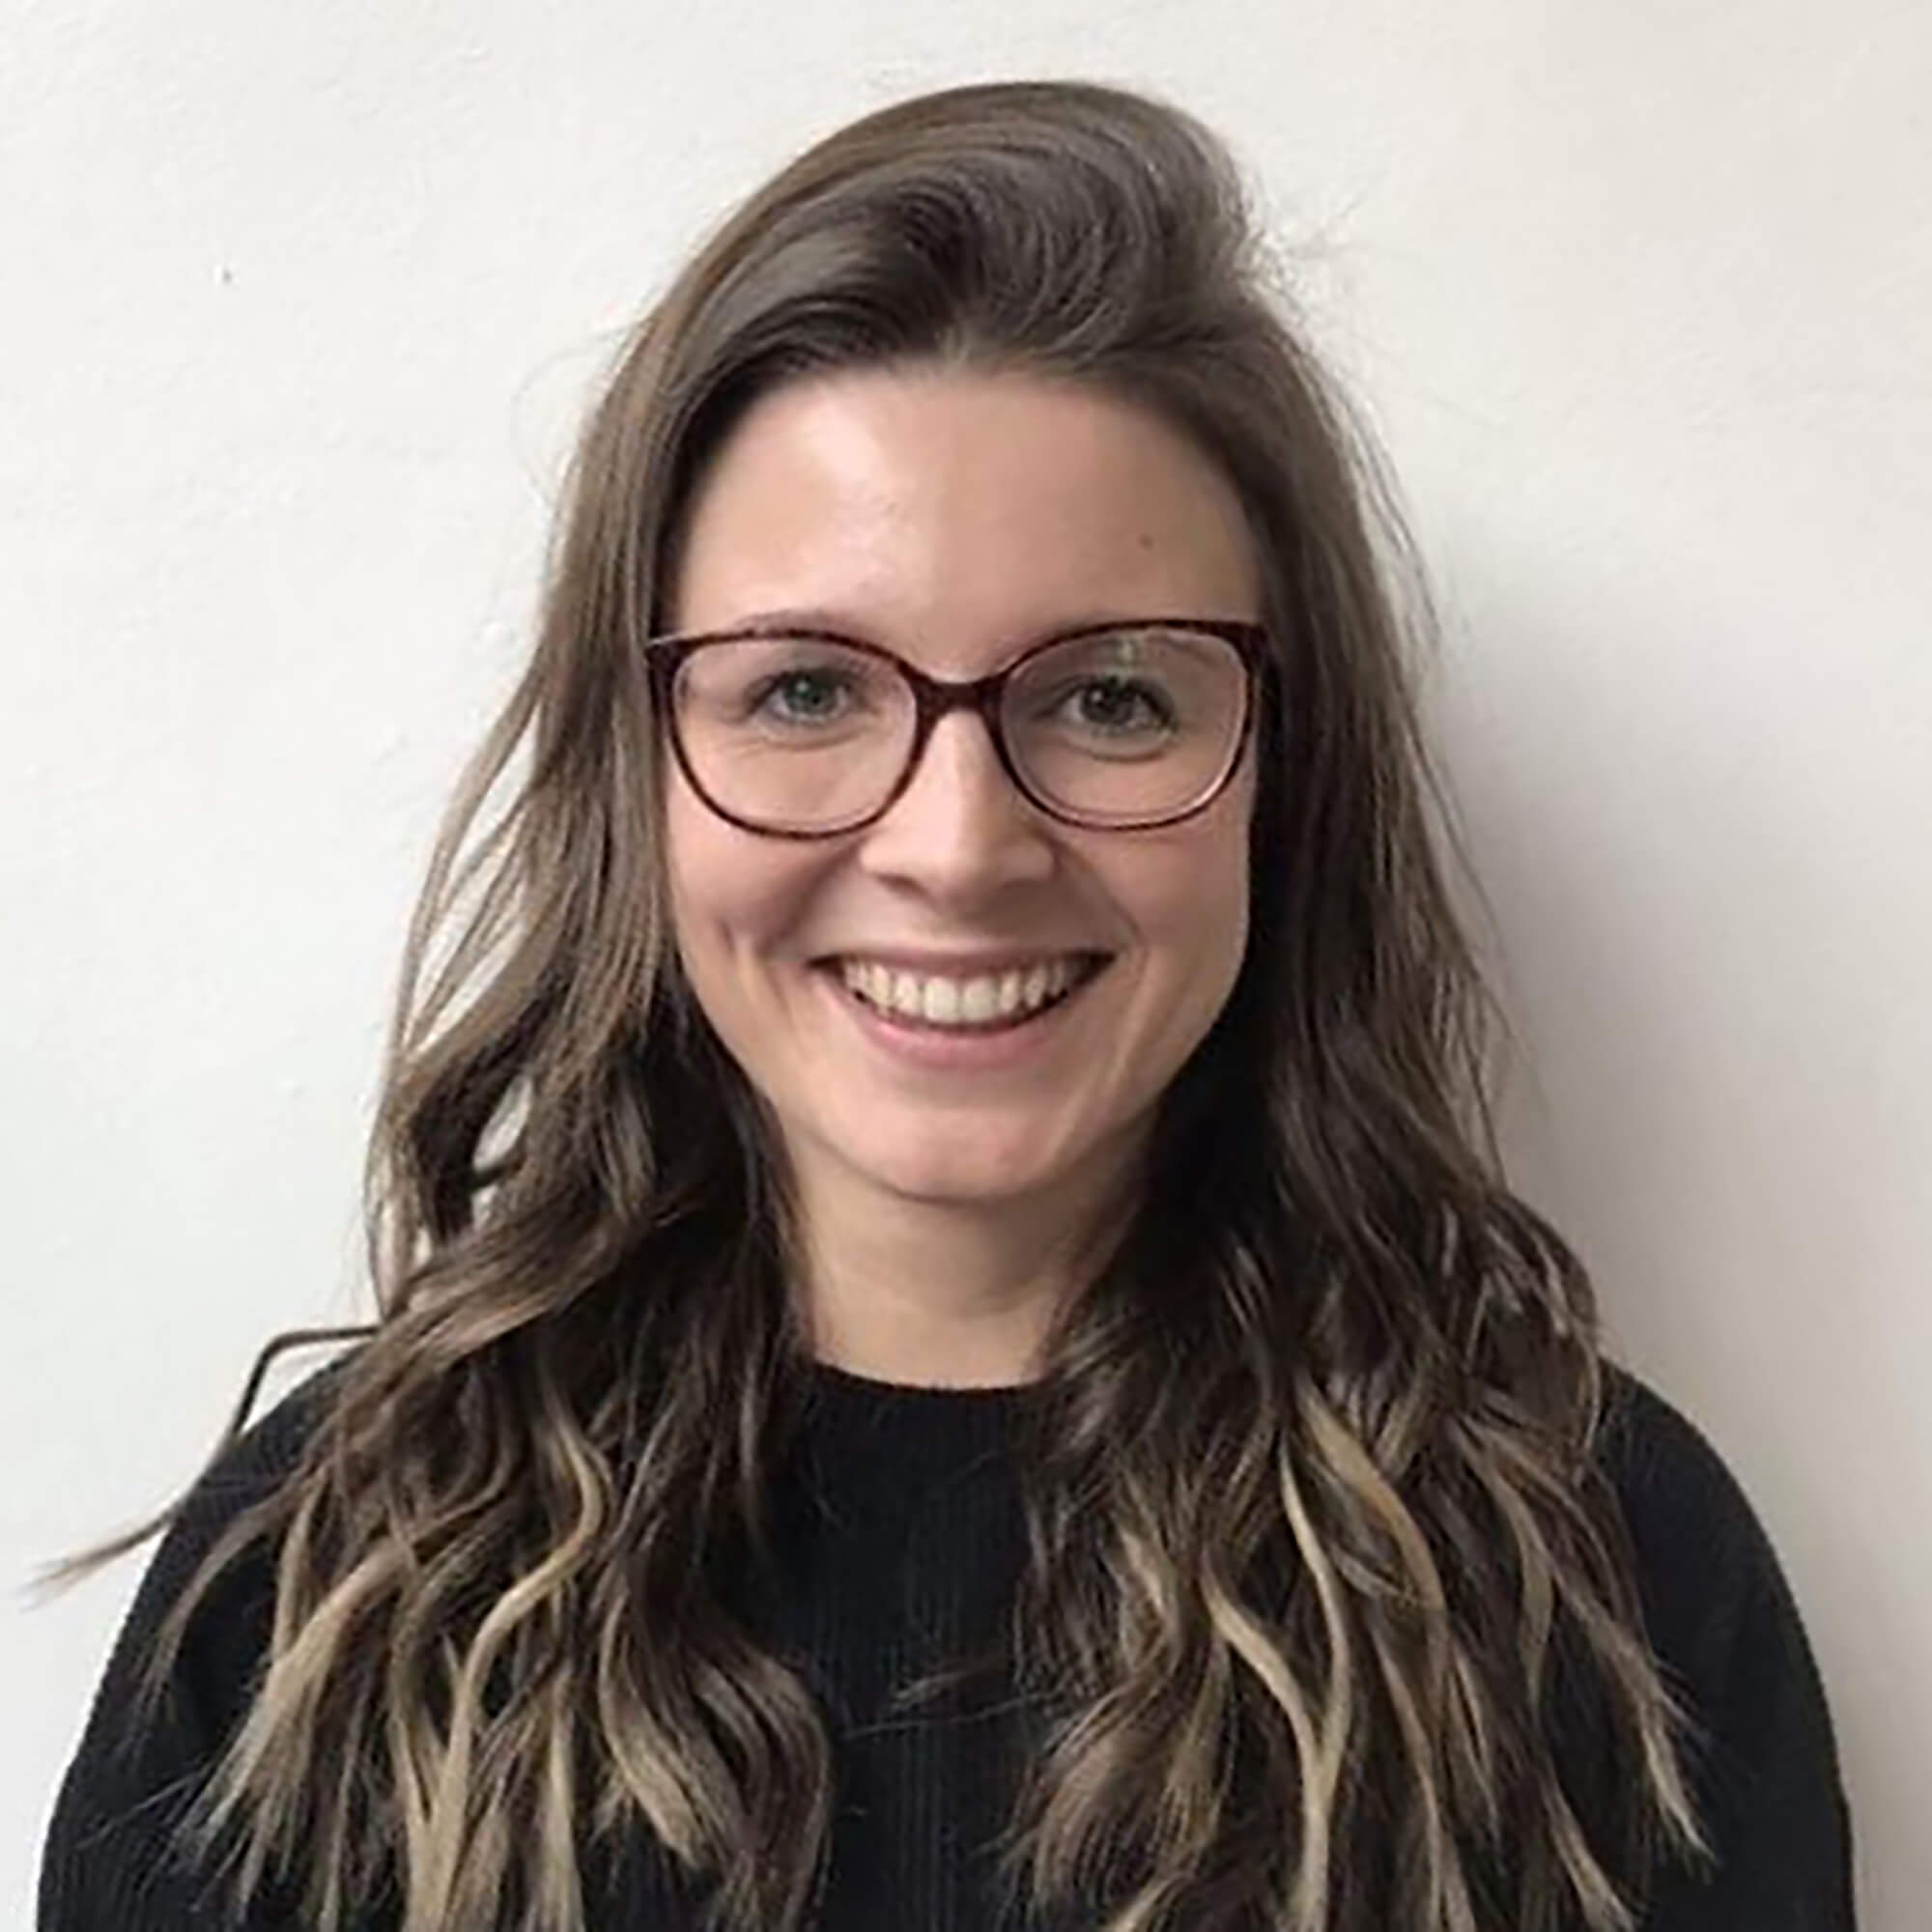 Beth Collinson smiling wearing glasses